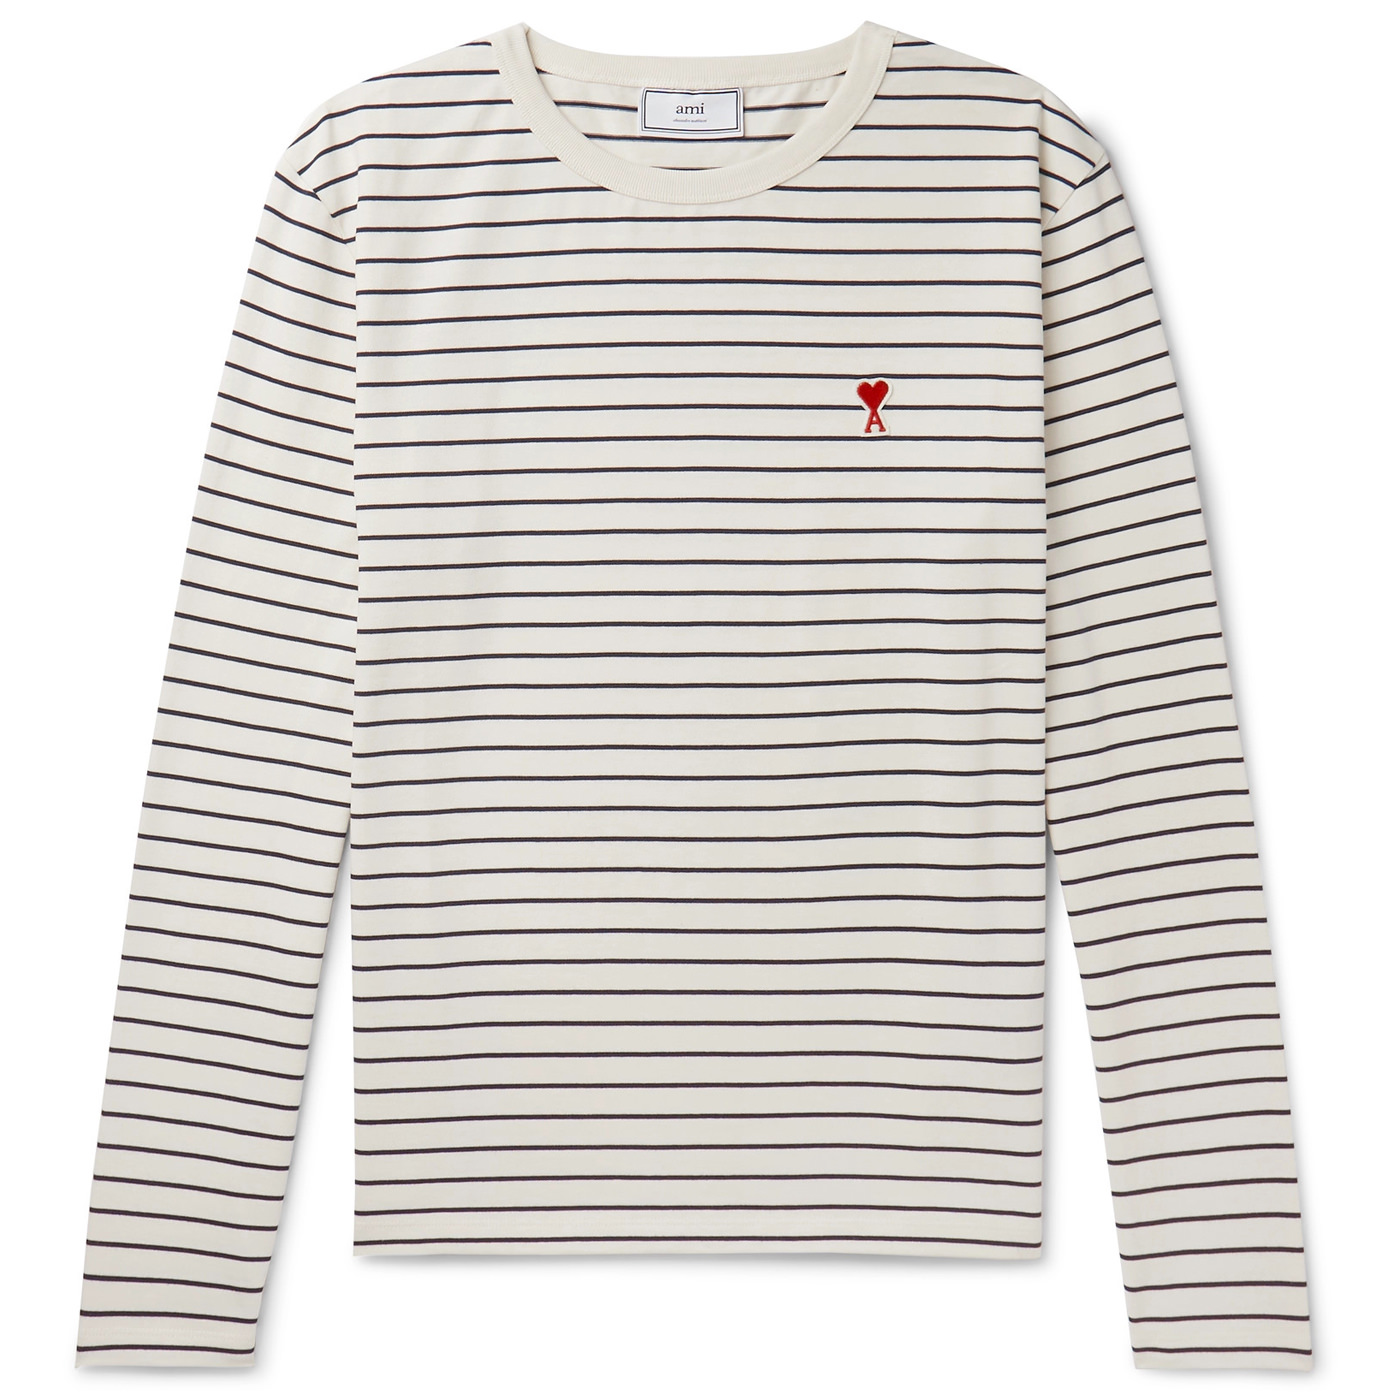 Style Mr Porter TShirt AMI Manches Longues Marinière